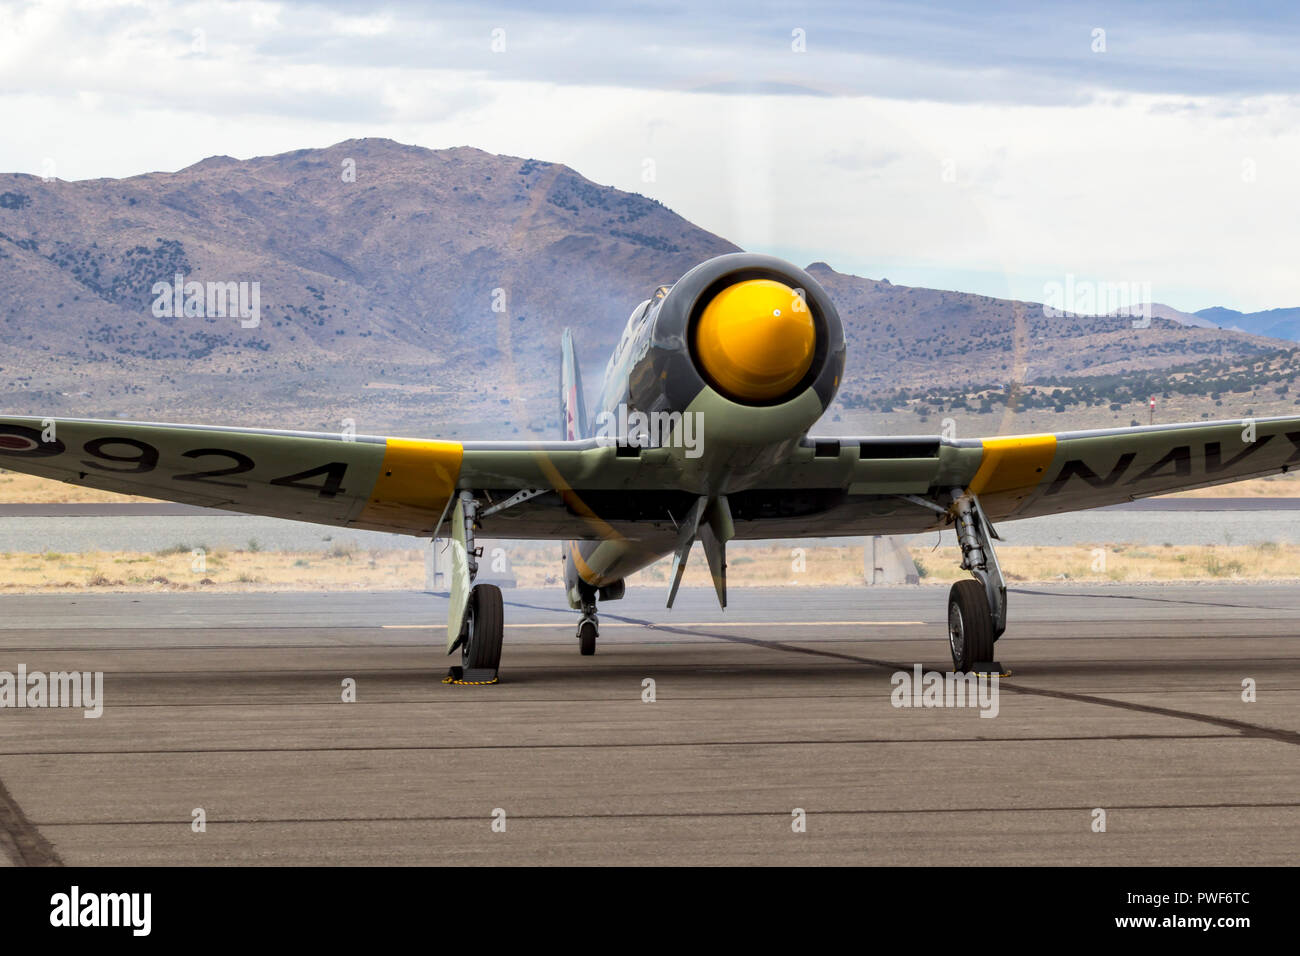 Hawker Sea Fury 924 powered by a  Bristol Centaurus motor at Stead Field during the 2018 National Championship Air Races. - Stock Image